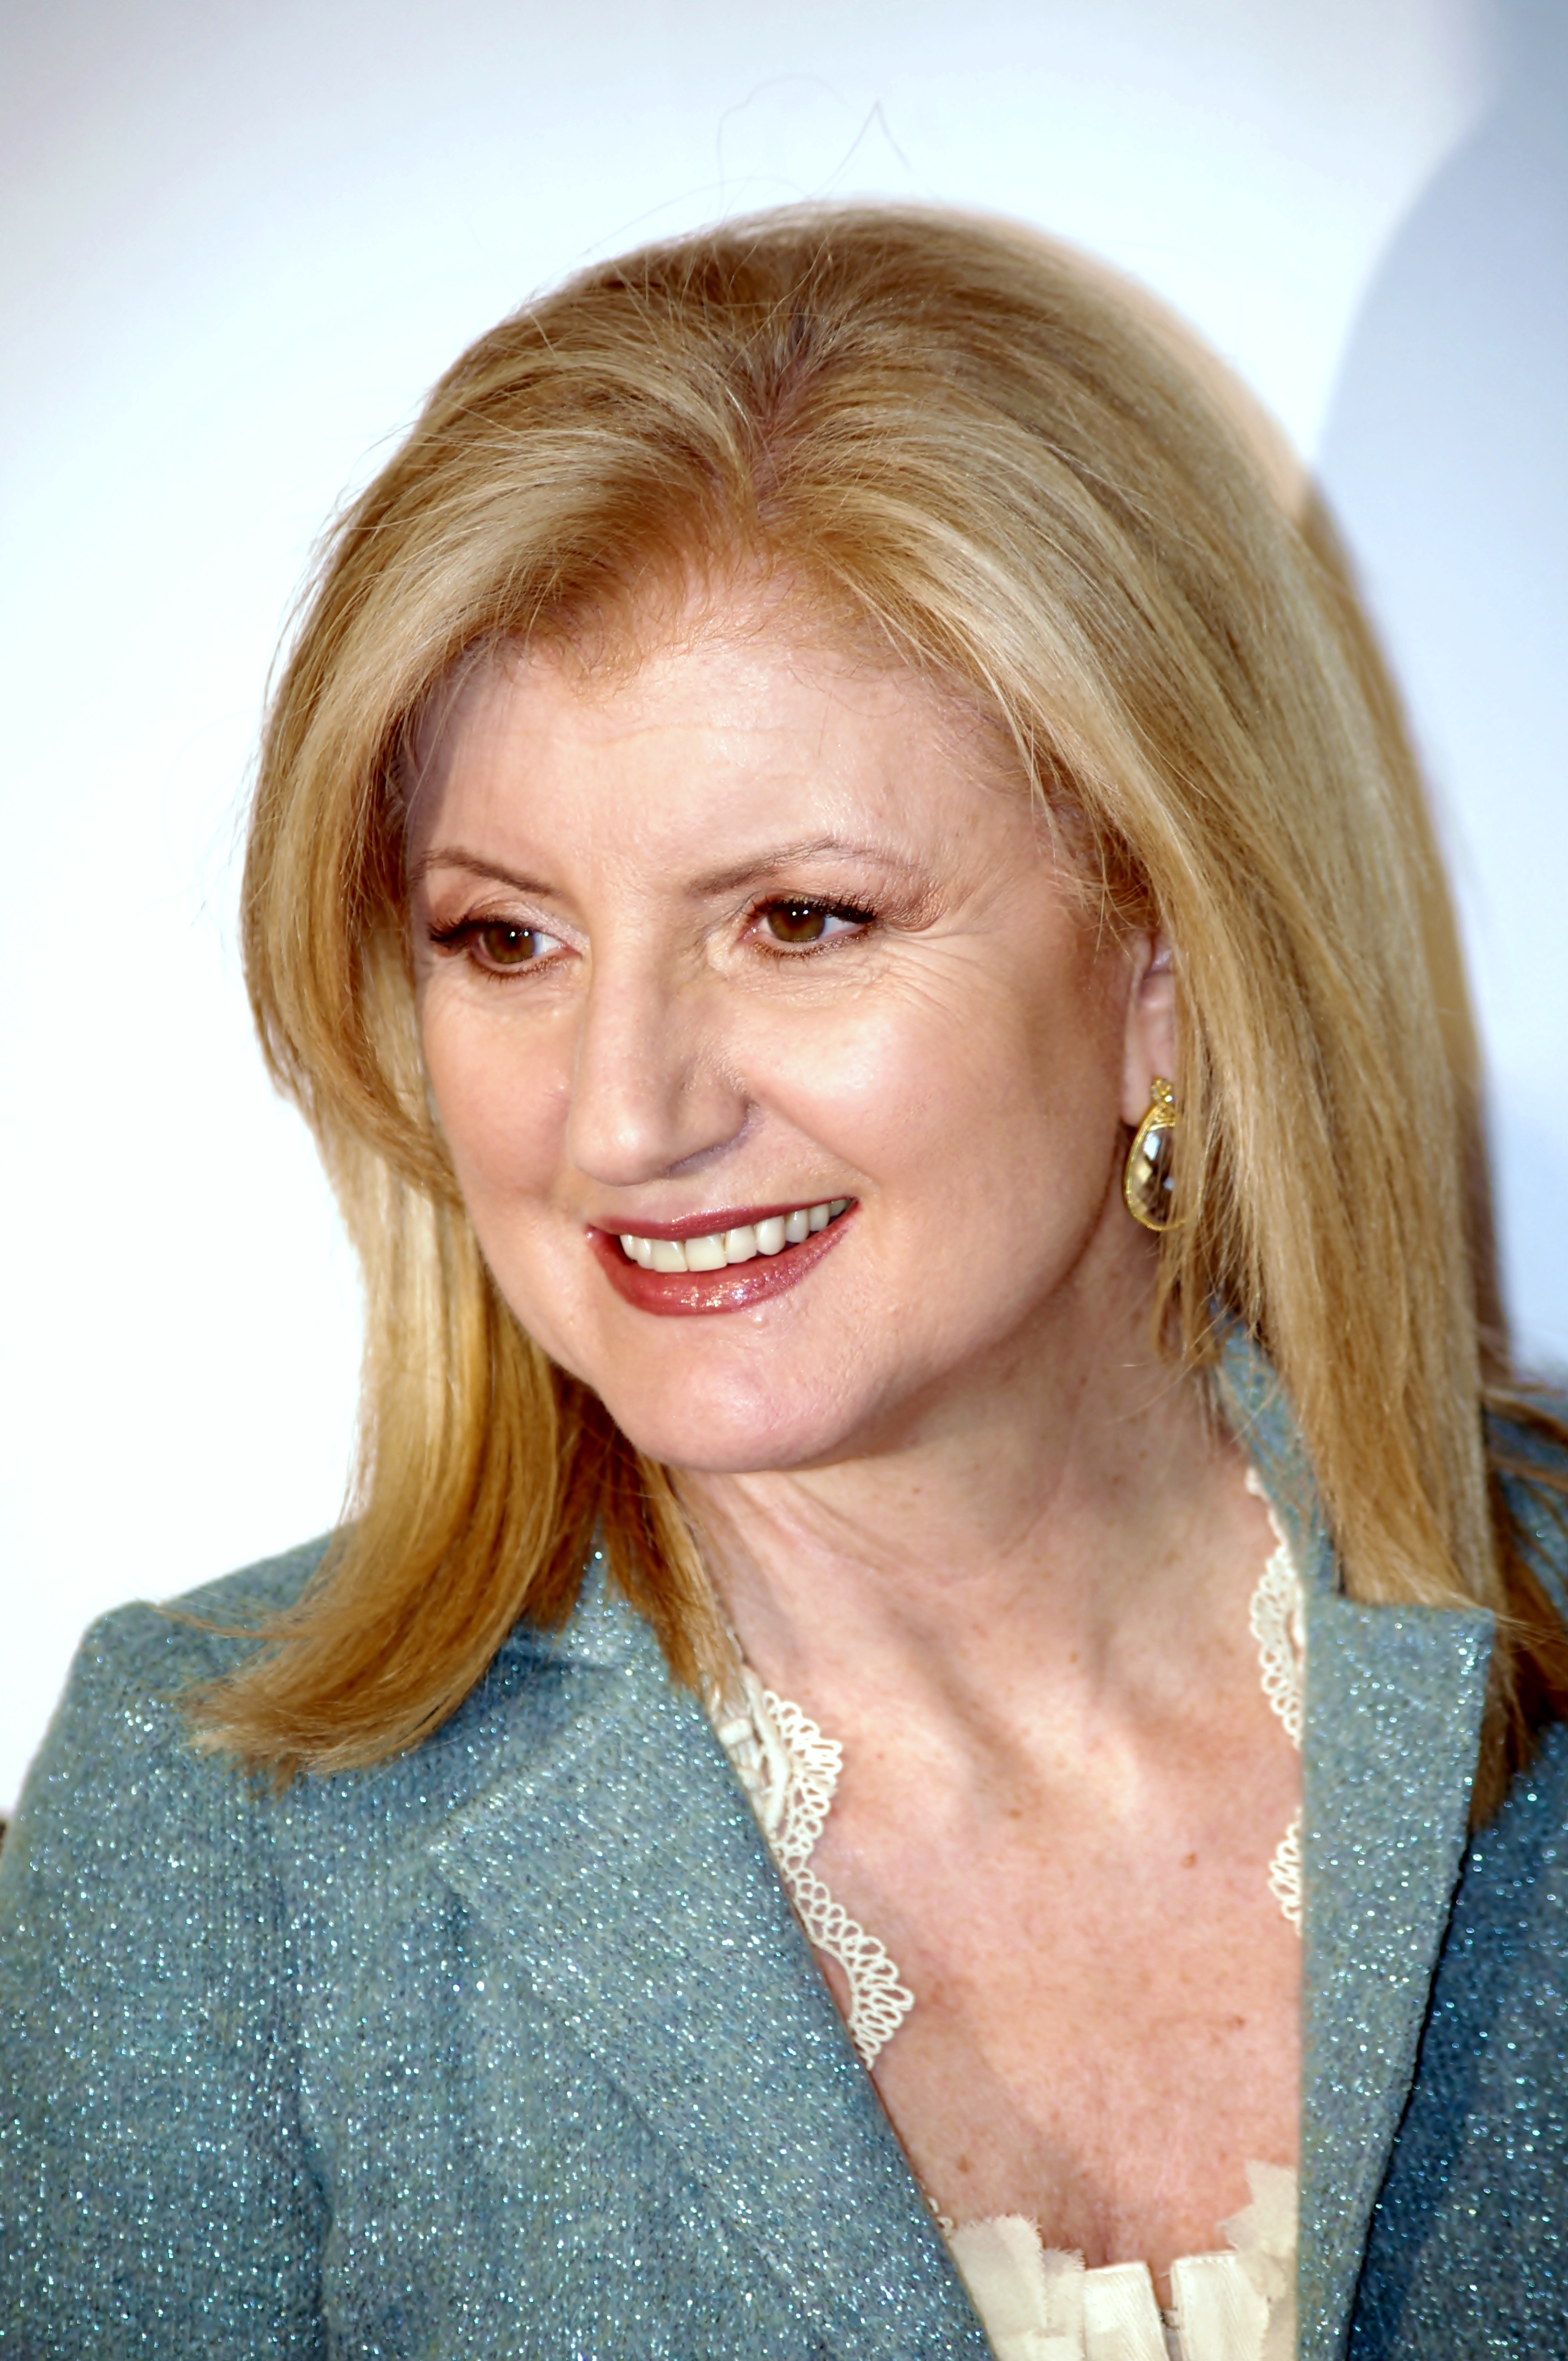 The 68-year old daughter of father Konstantinos Stassinopoulos and mother Elli Stassinopoulos Arianna Huffington in 2018 photo. Arianna Huffington earned a  million dollar salary - leaving the net worth at 50 million in 2018